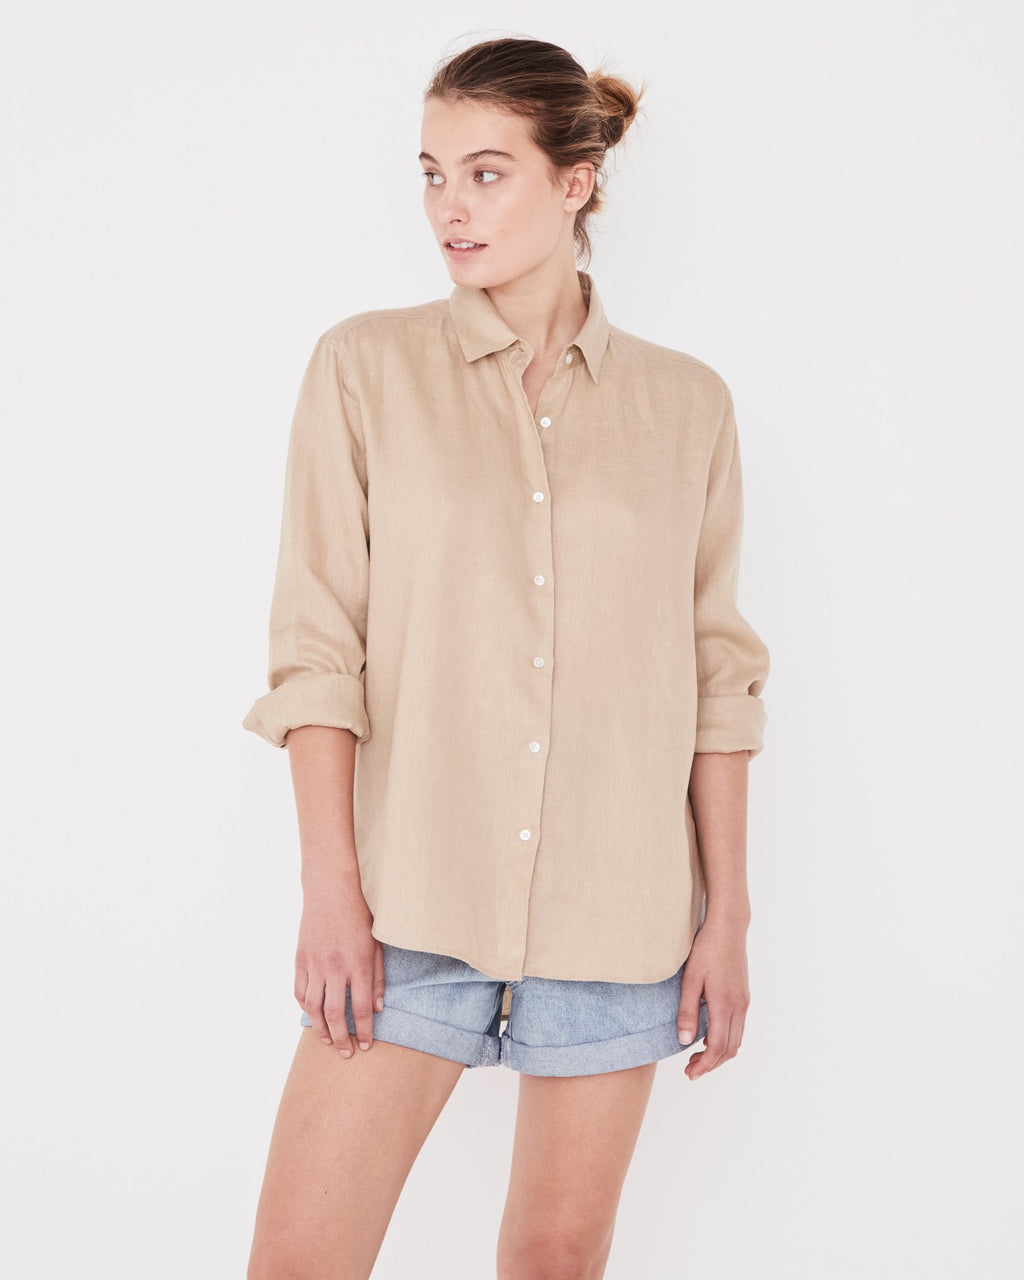 Assembly Label Xander Long Sleeve Shirt - Dover